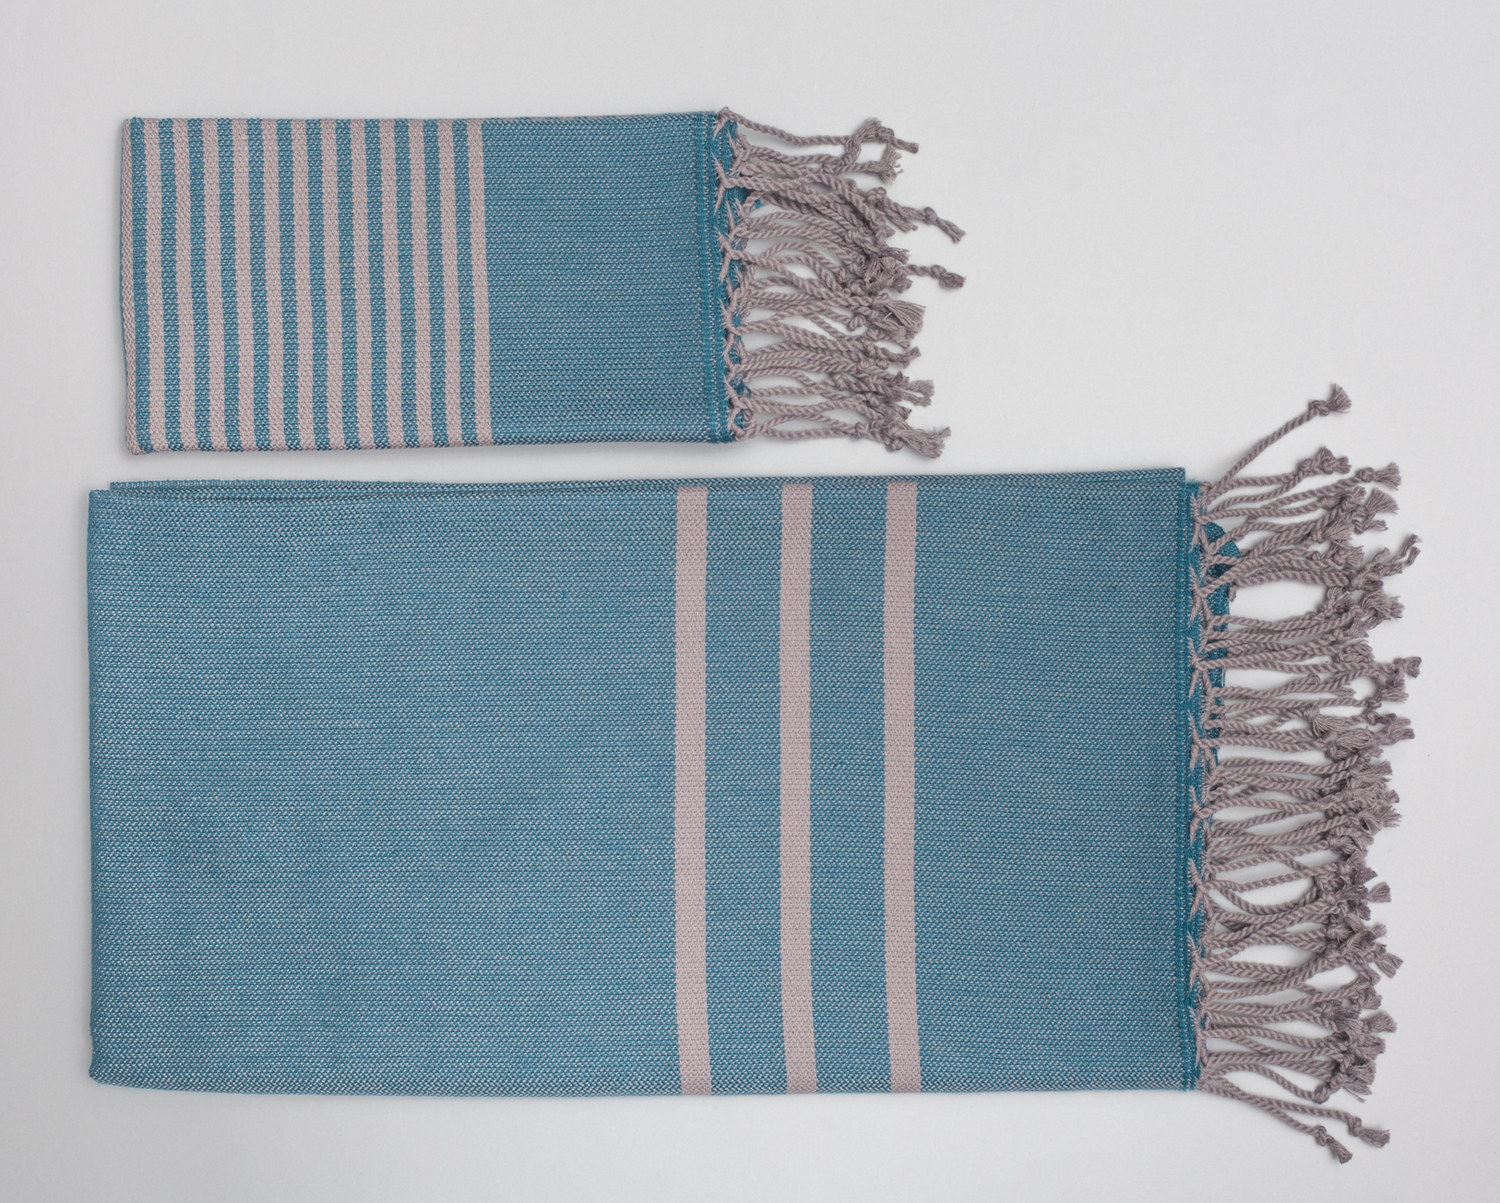 Antiochia Turkish Bath Towels in Gray - teal & gray 2